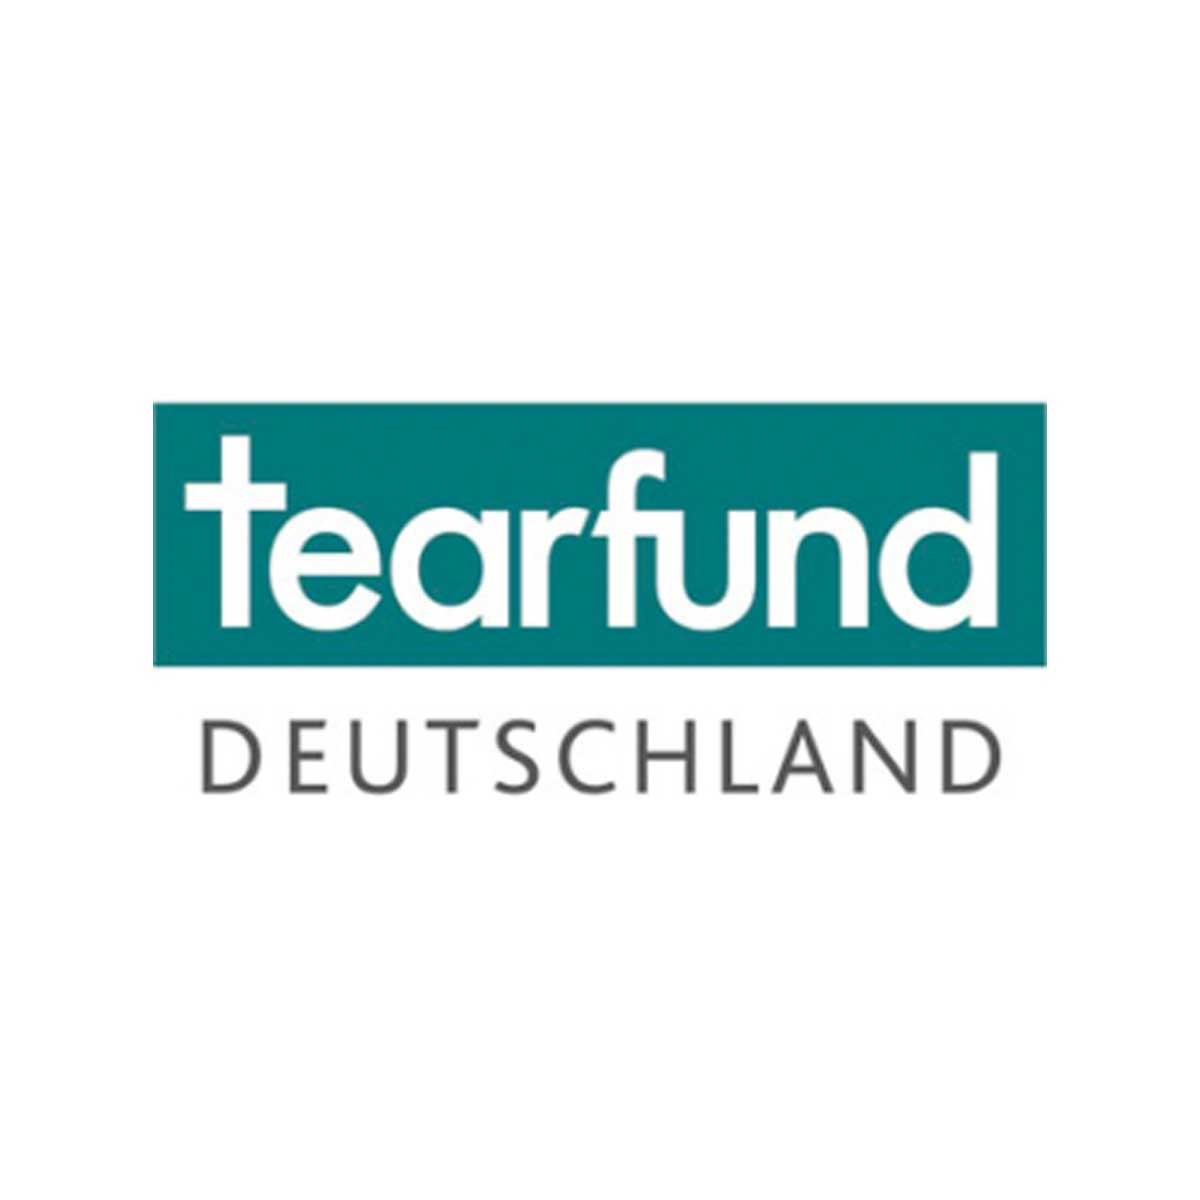 ROOM IN A BOX - Tearfund Deutschland